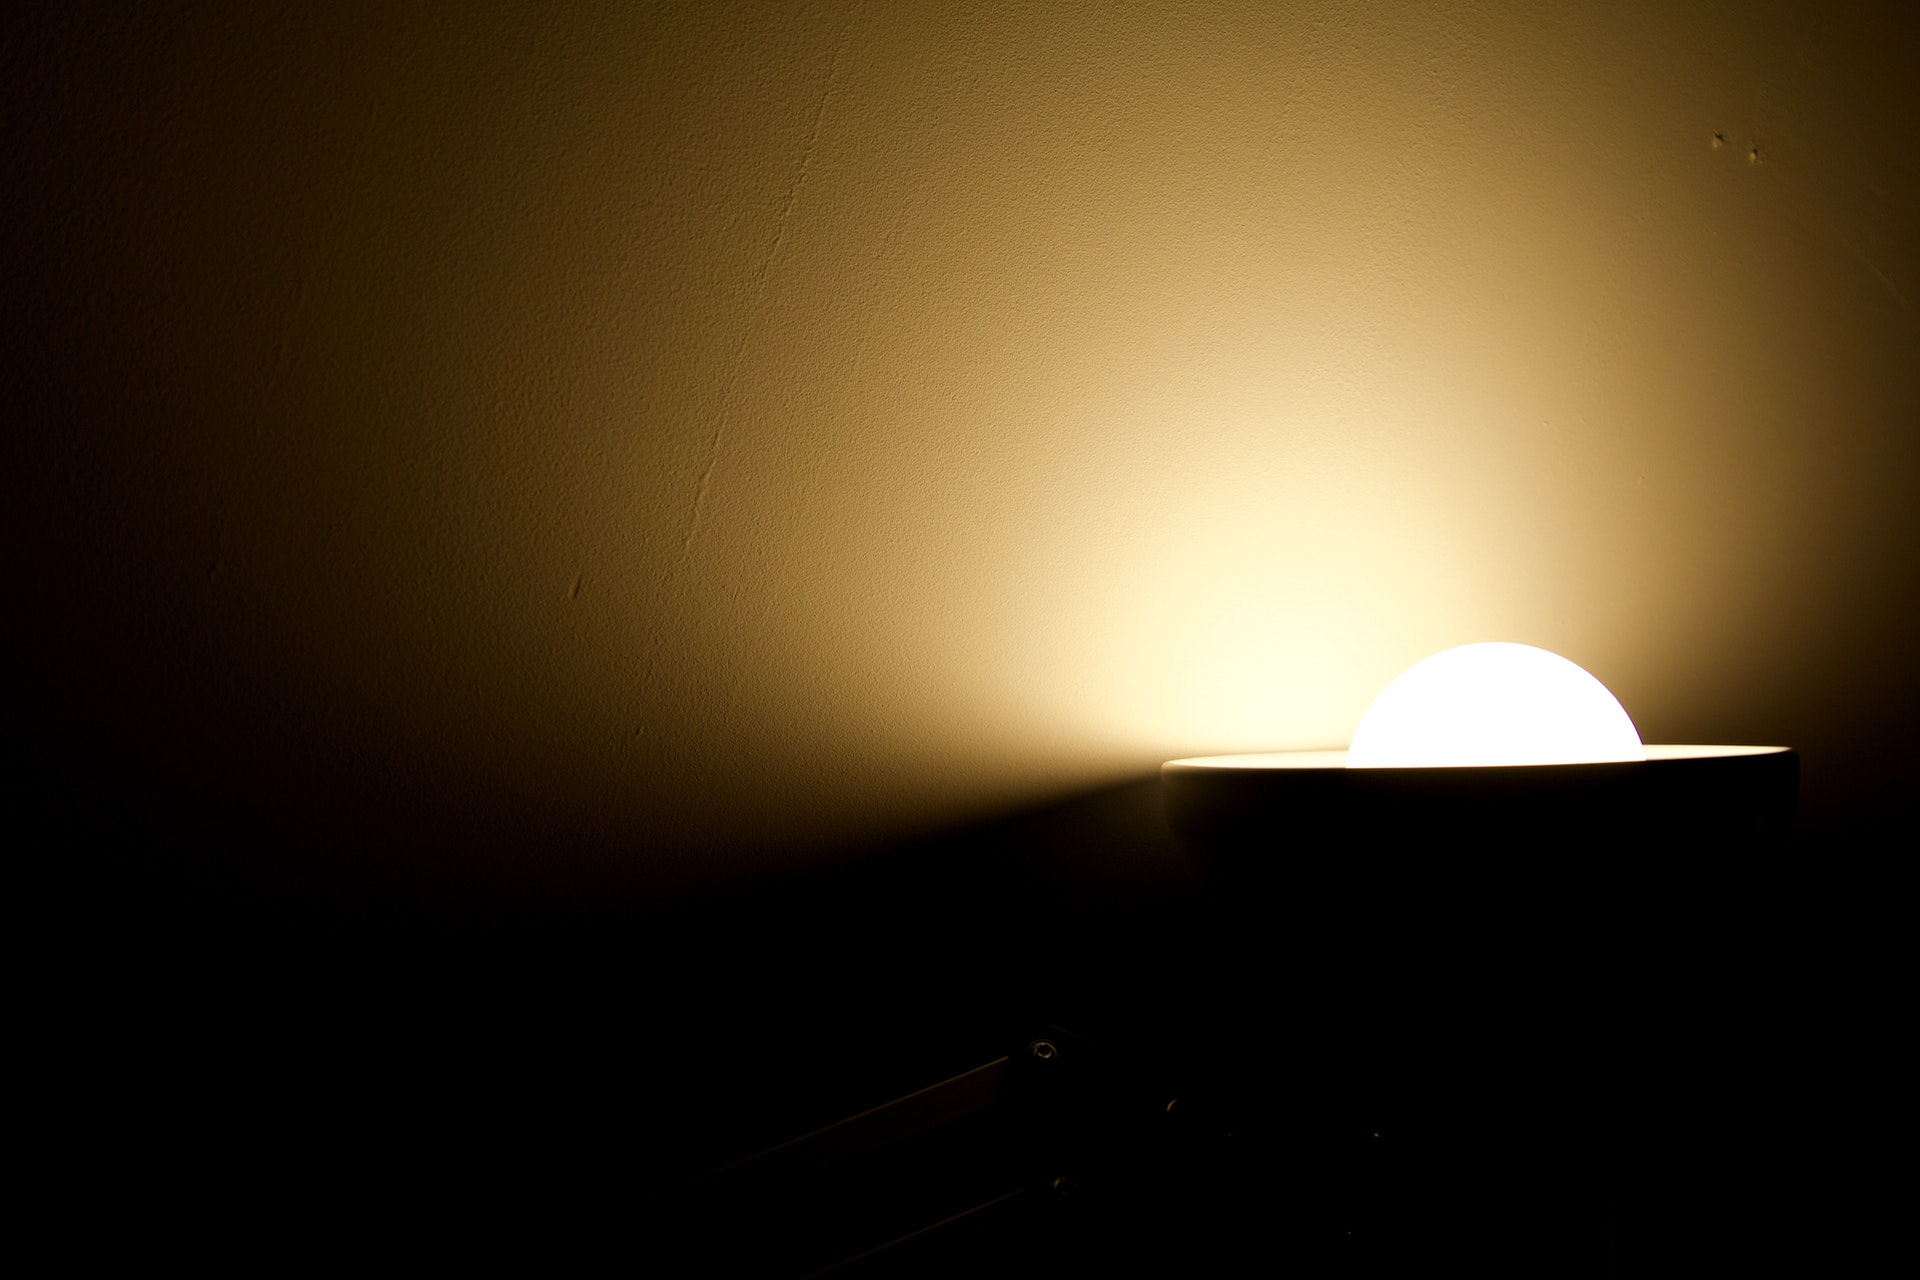 Lamp light lighting up a dark room